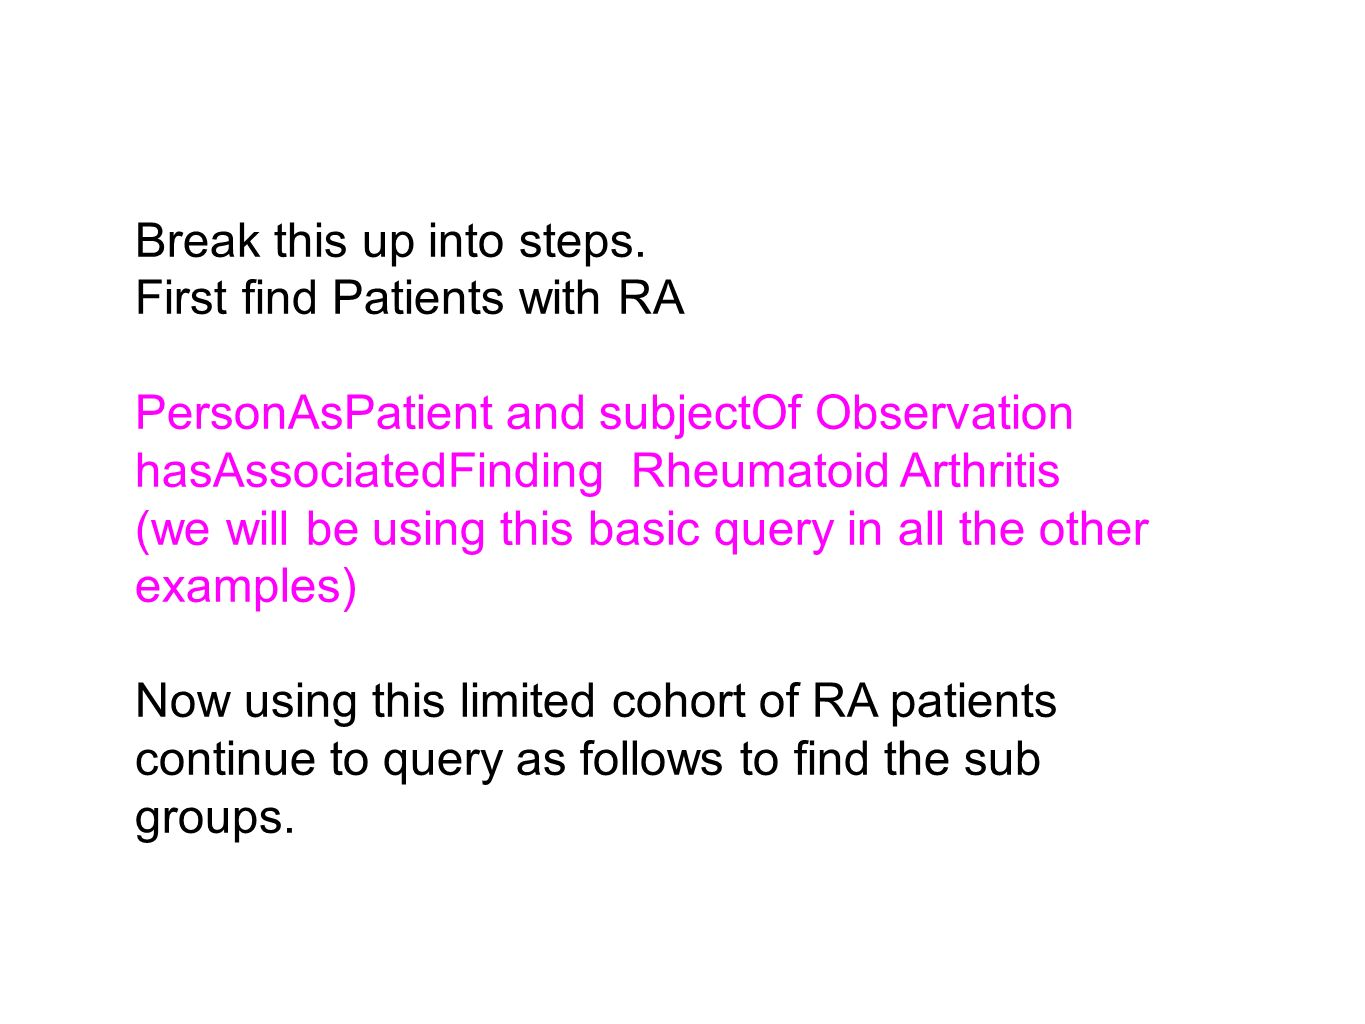 Break this up into steps. First find Patients with RA PersonAsPatient and subjectOf Observation hasAssociatedFinding Rheumatoid Arthritis (we will be